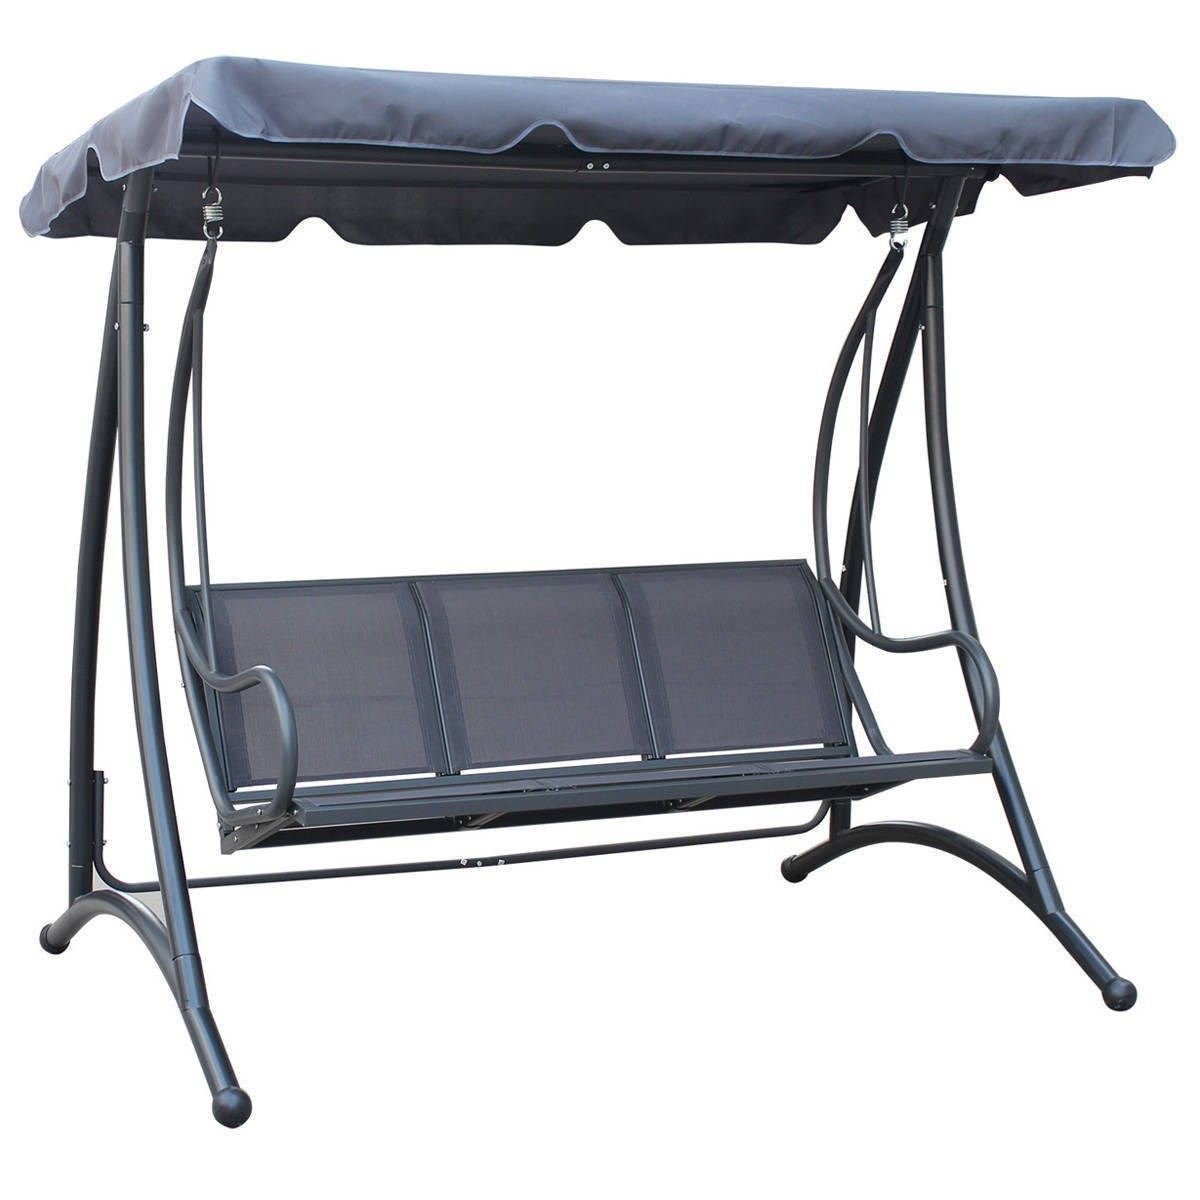 Garden Swing Bench With Canopy Shade Garden Swing Seat 3 Seater